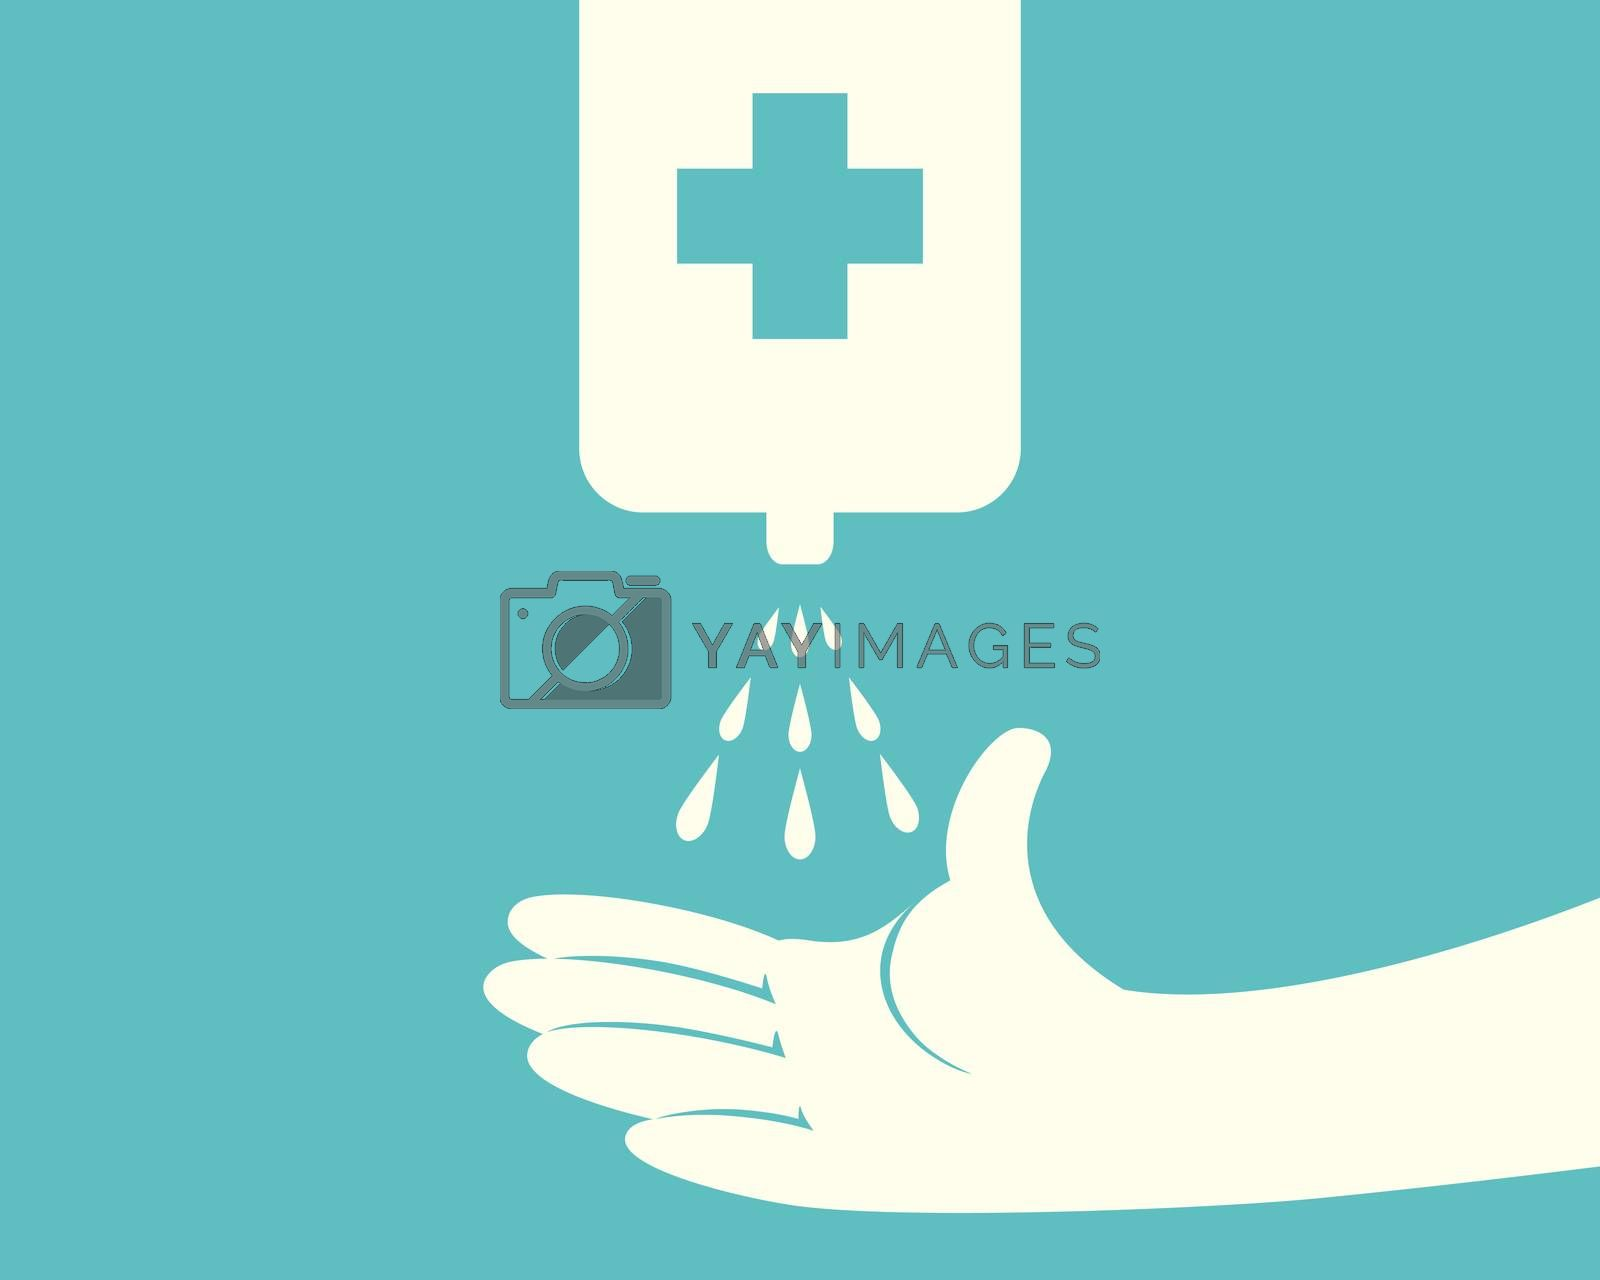 Hands using automatic sanitizer liquid spray machine with cross symbol.hand soap gel.touchless dispenser.touch-free alcohol spray.Vector illustration flat design.infrared cleaner.anti germ concept.sign and icon template